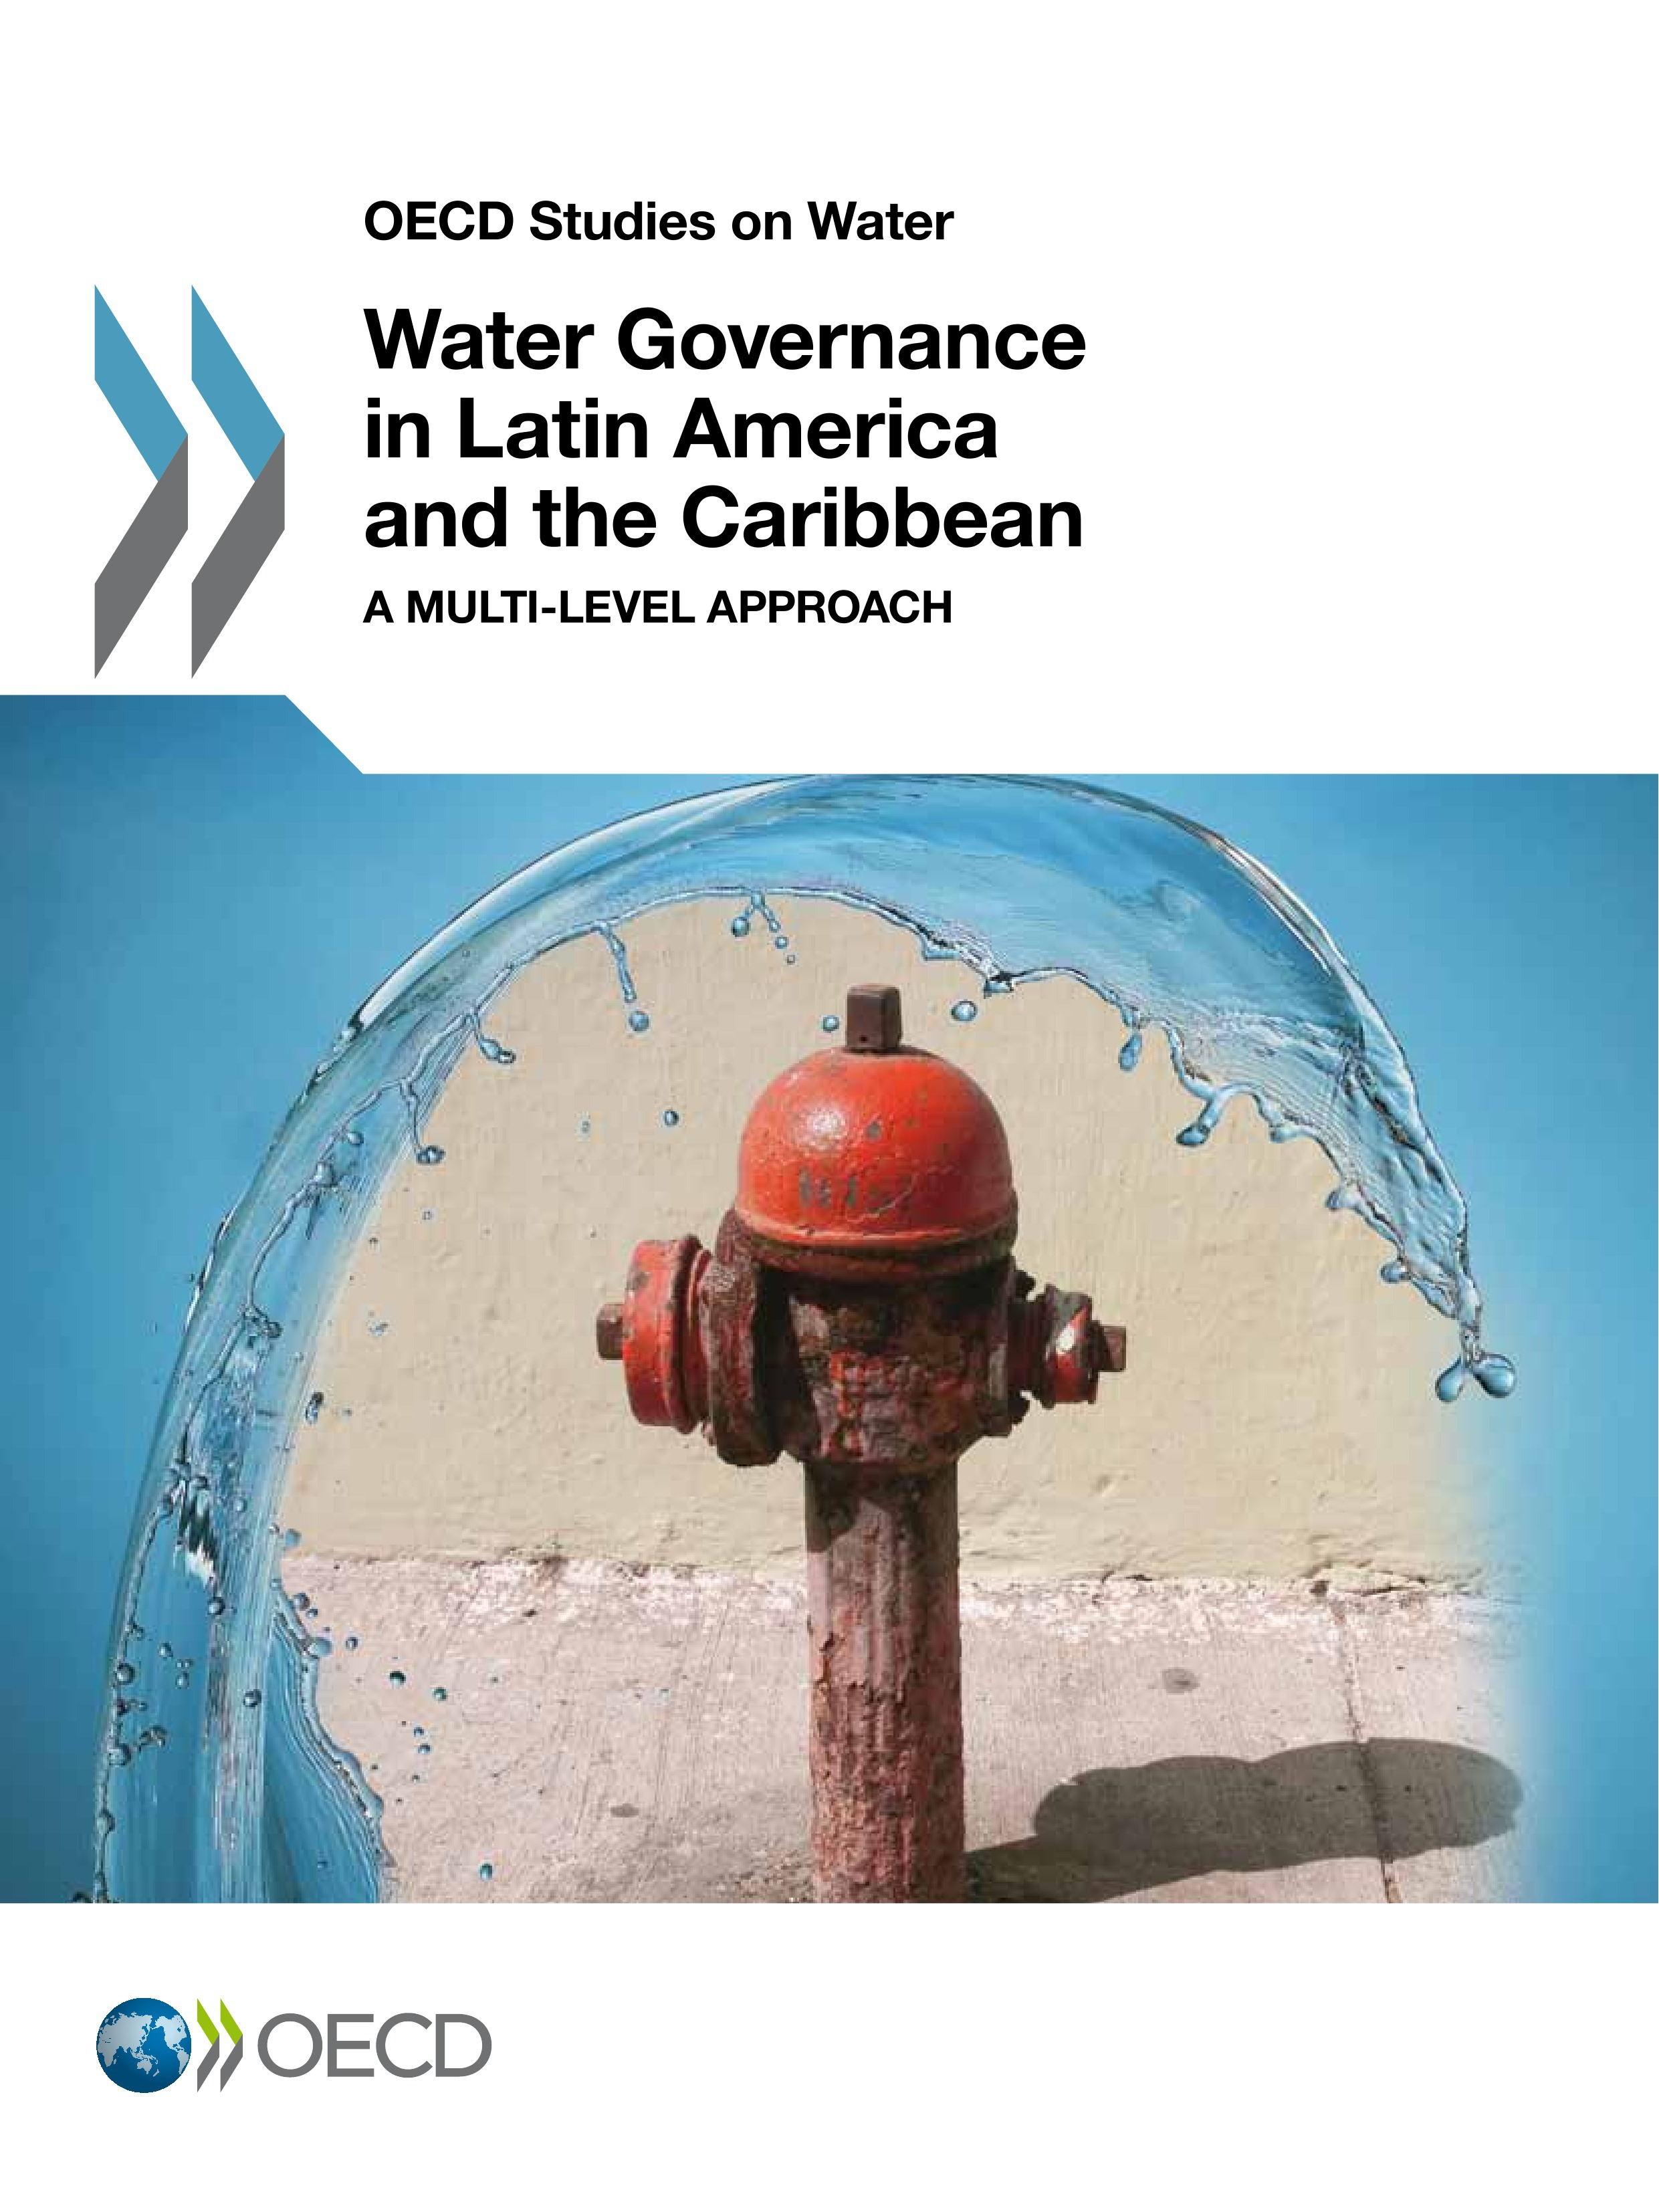 Water governance in Latin America and the Caribbean ; OECD studies on water